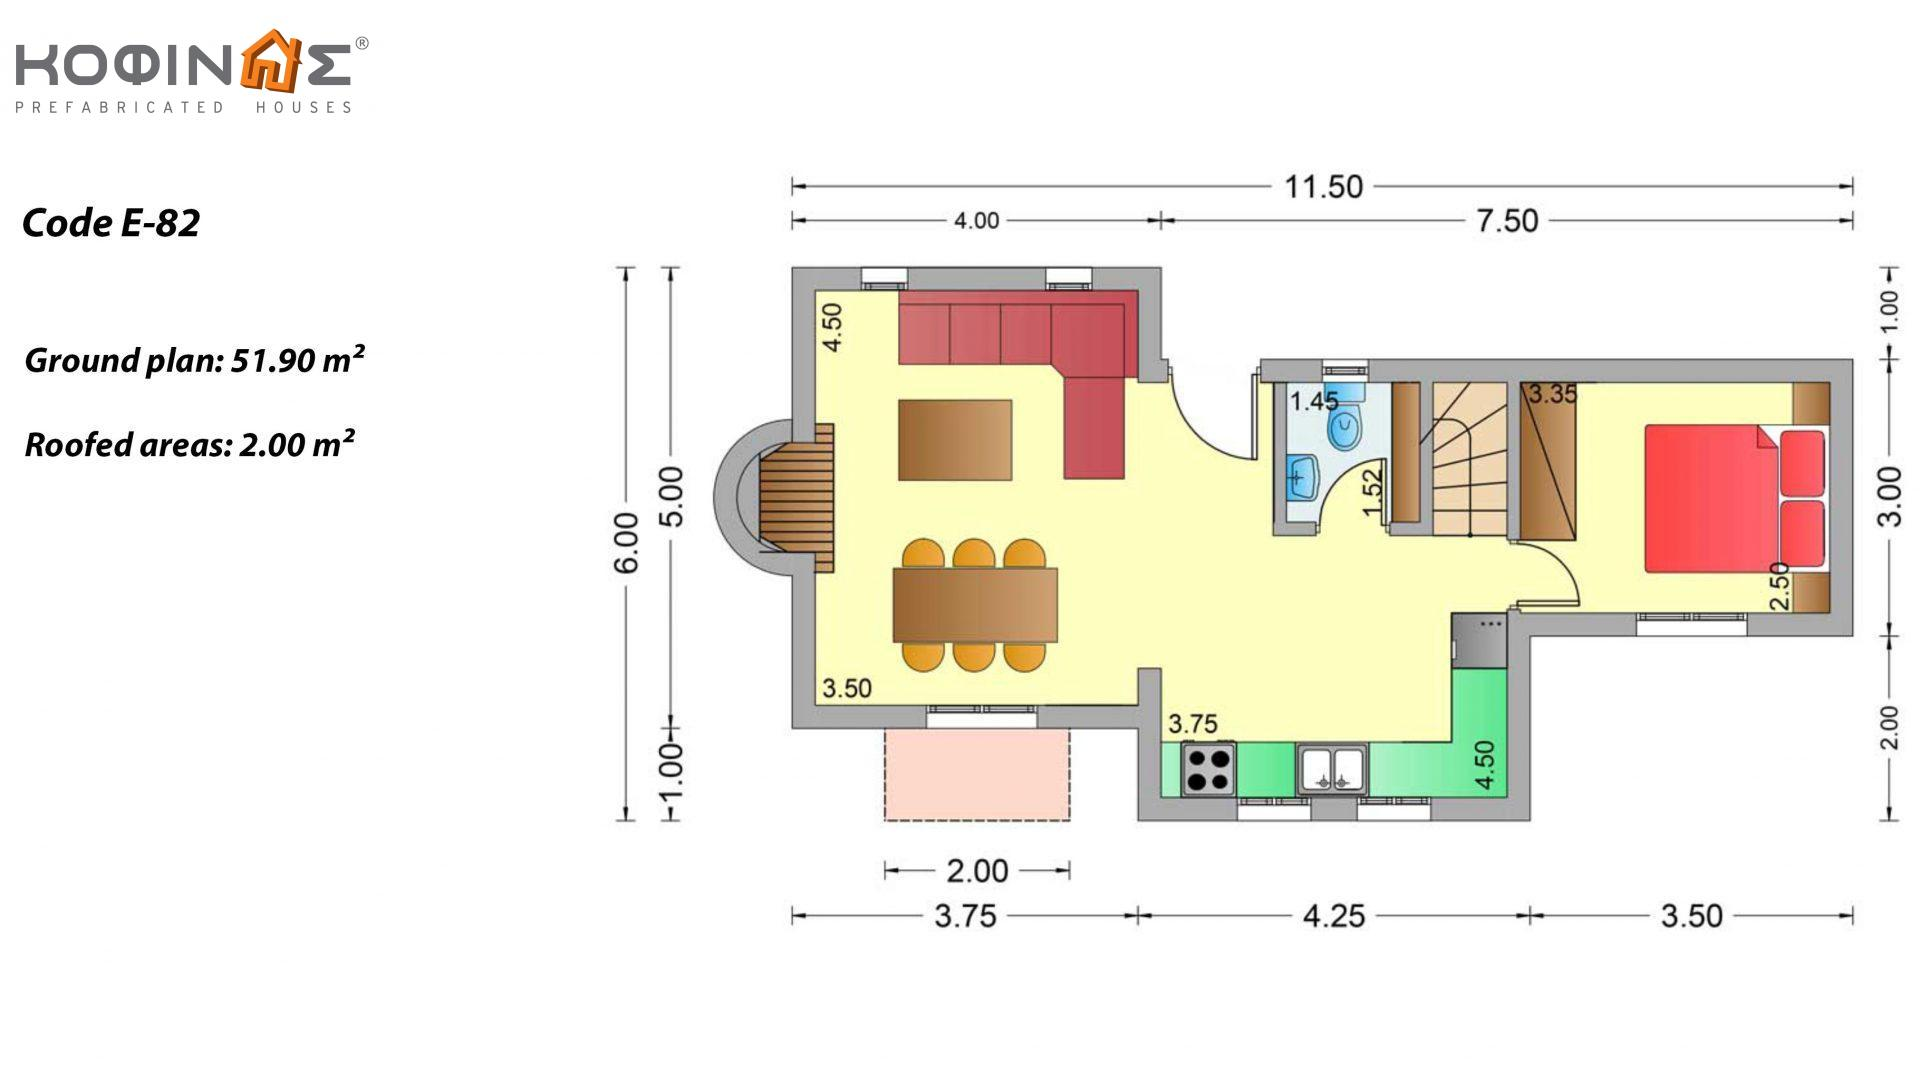 2-story house E-82, total surface of 82,30 m², roofed areas 2.00 m²